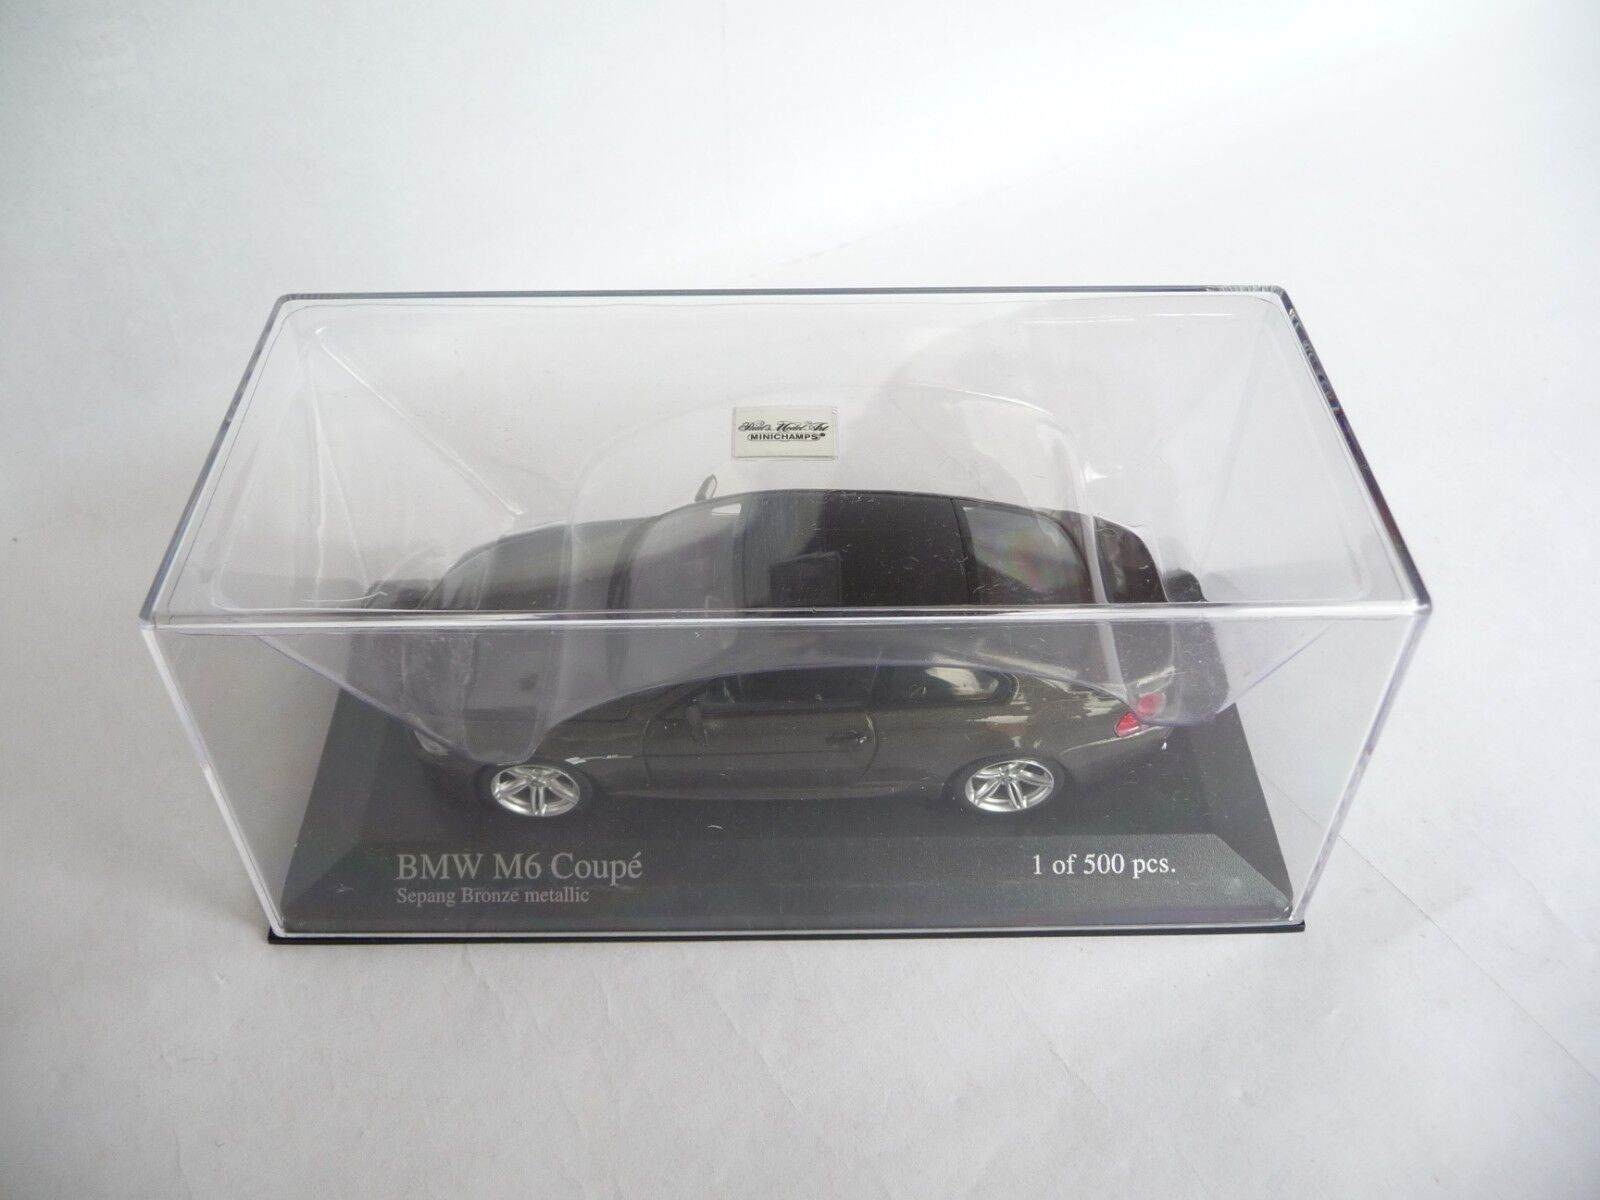 Minichamps 1 43 BMW M6 Coupé 2006 Metálico Marrone 026121